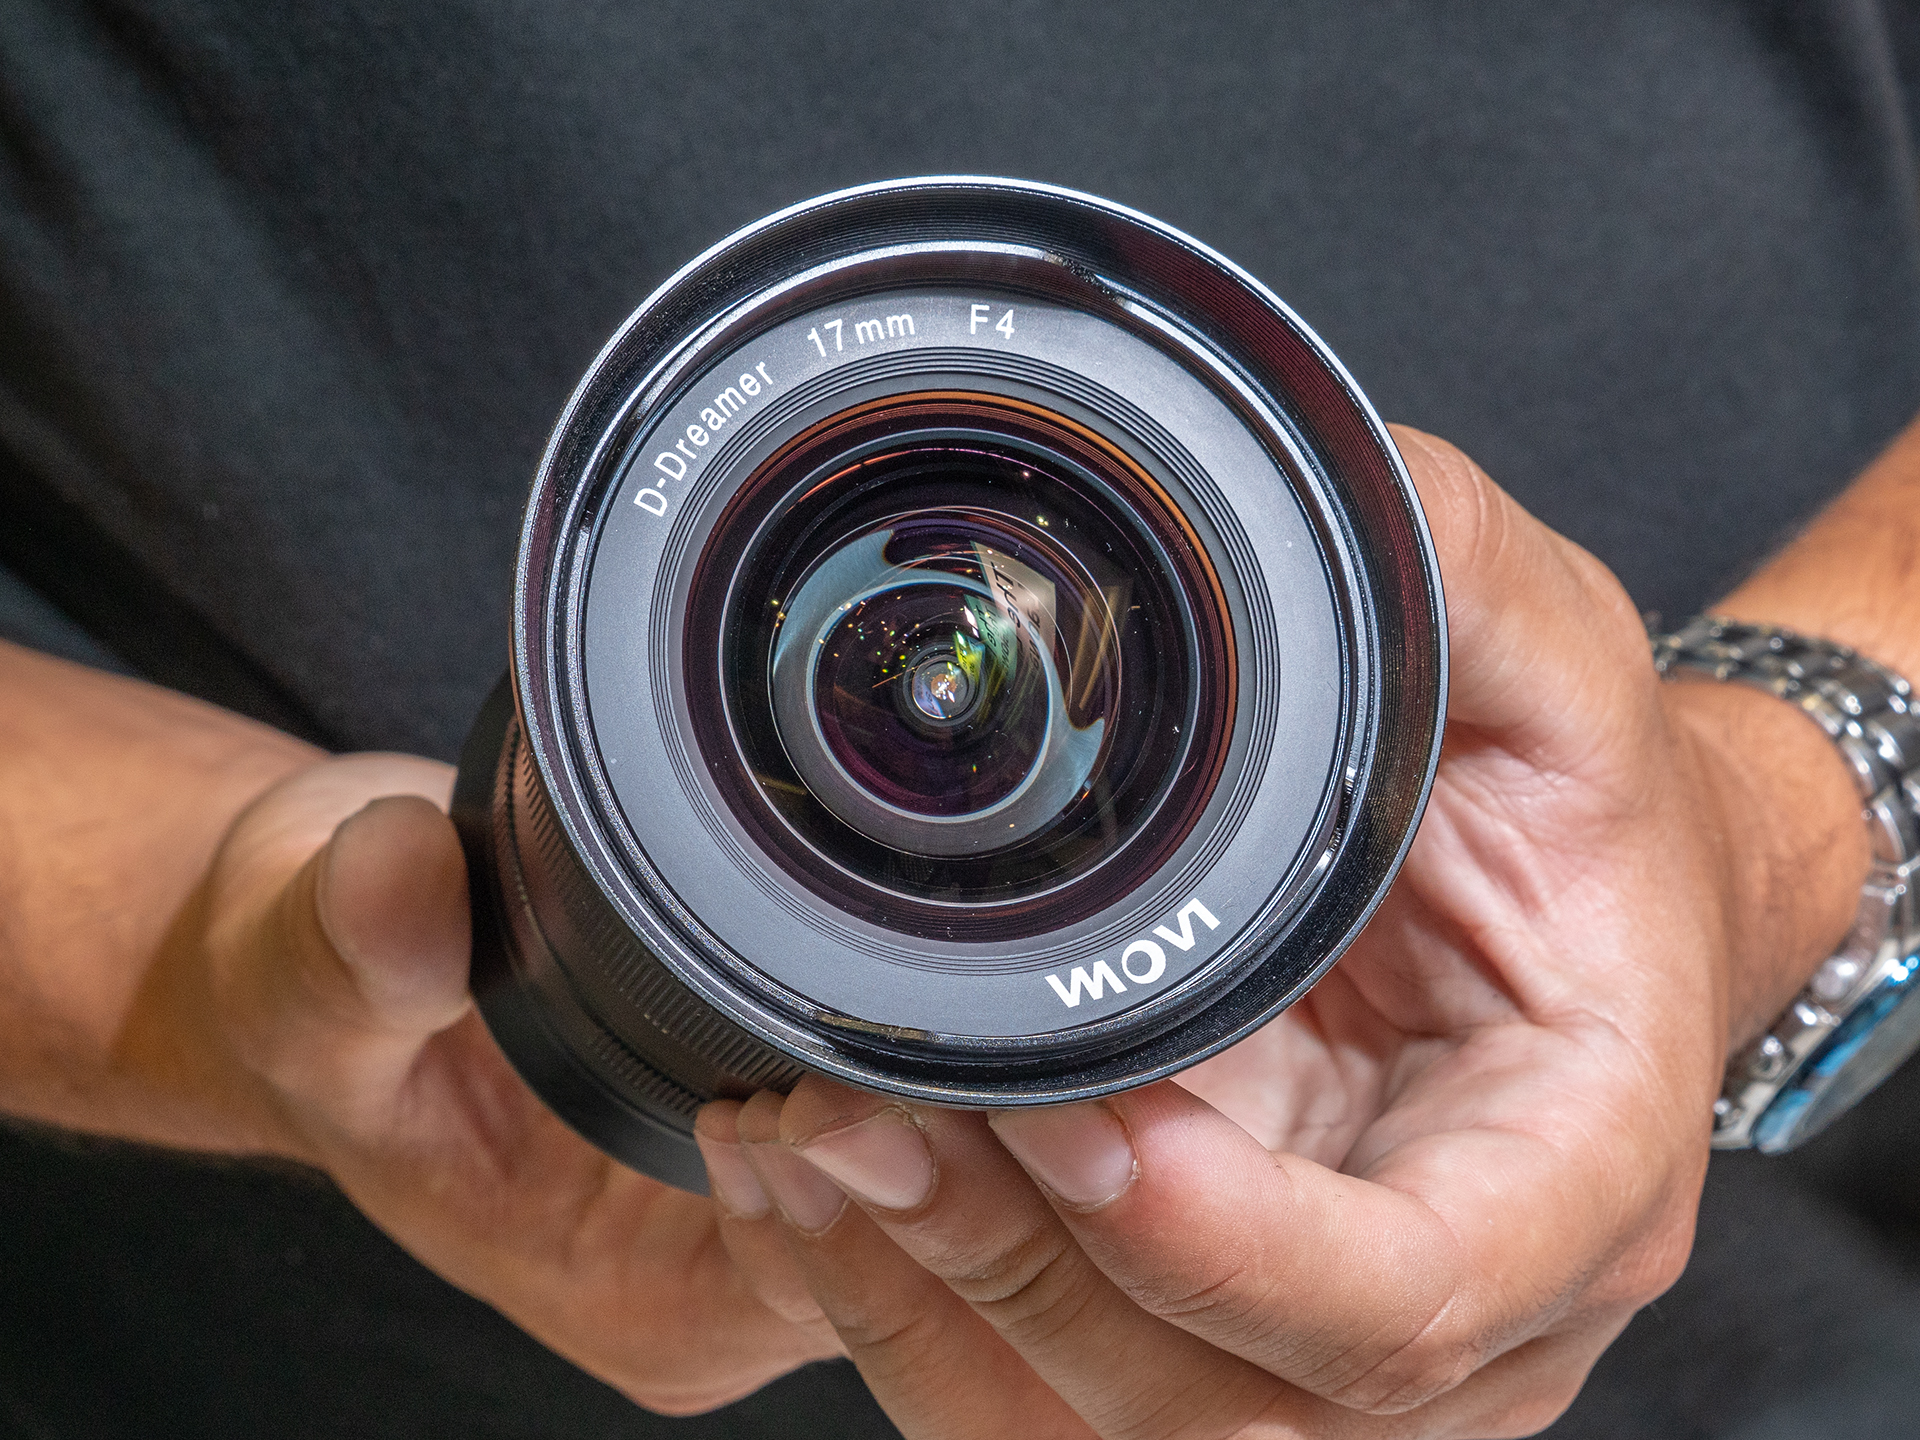 Hands-on with the new Laowa lens collection: Digital